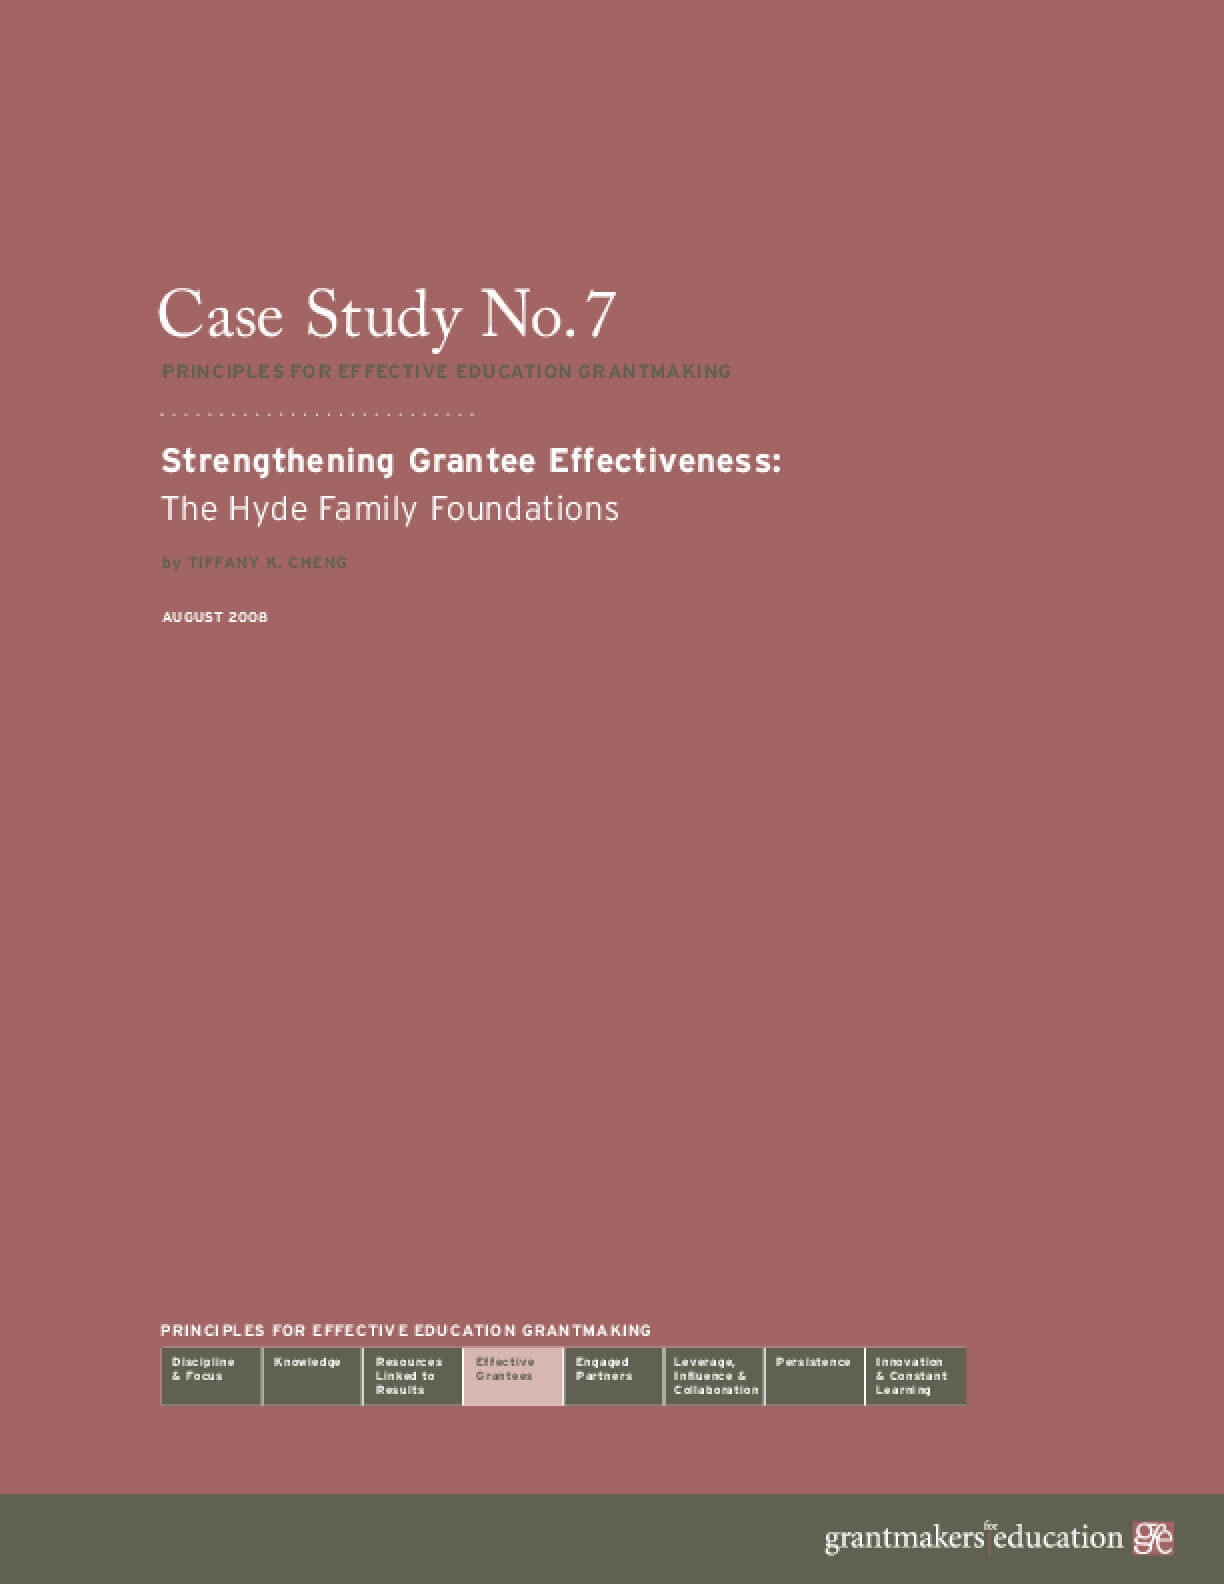 Strengthening Grantee Effectiveness: The Hyde Family Foundations